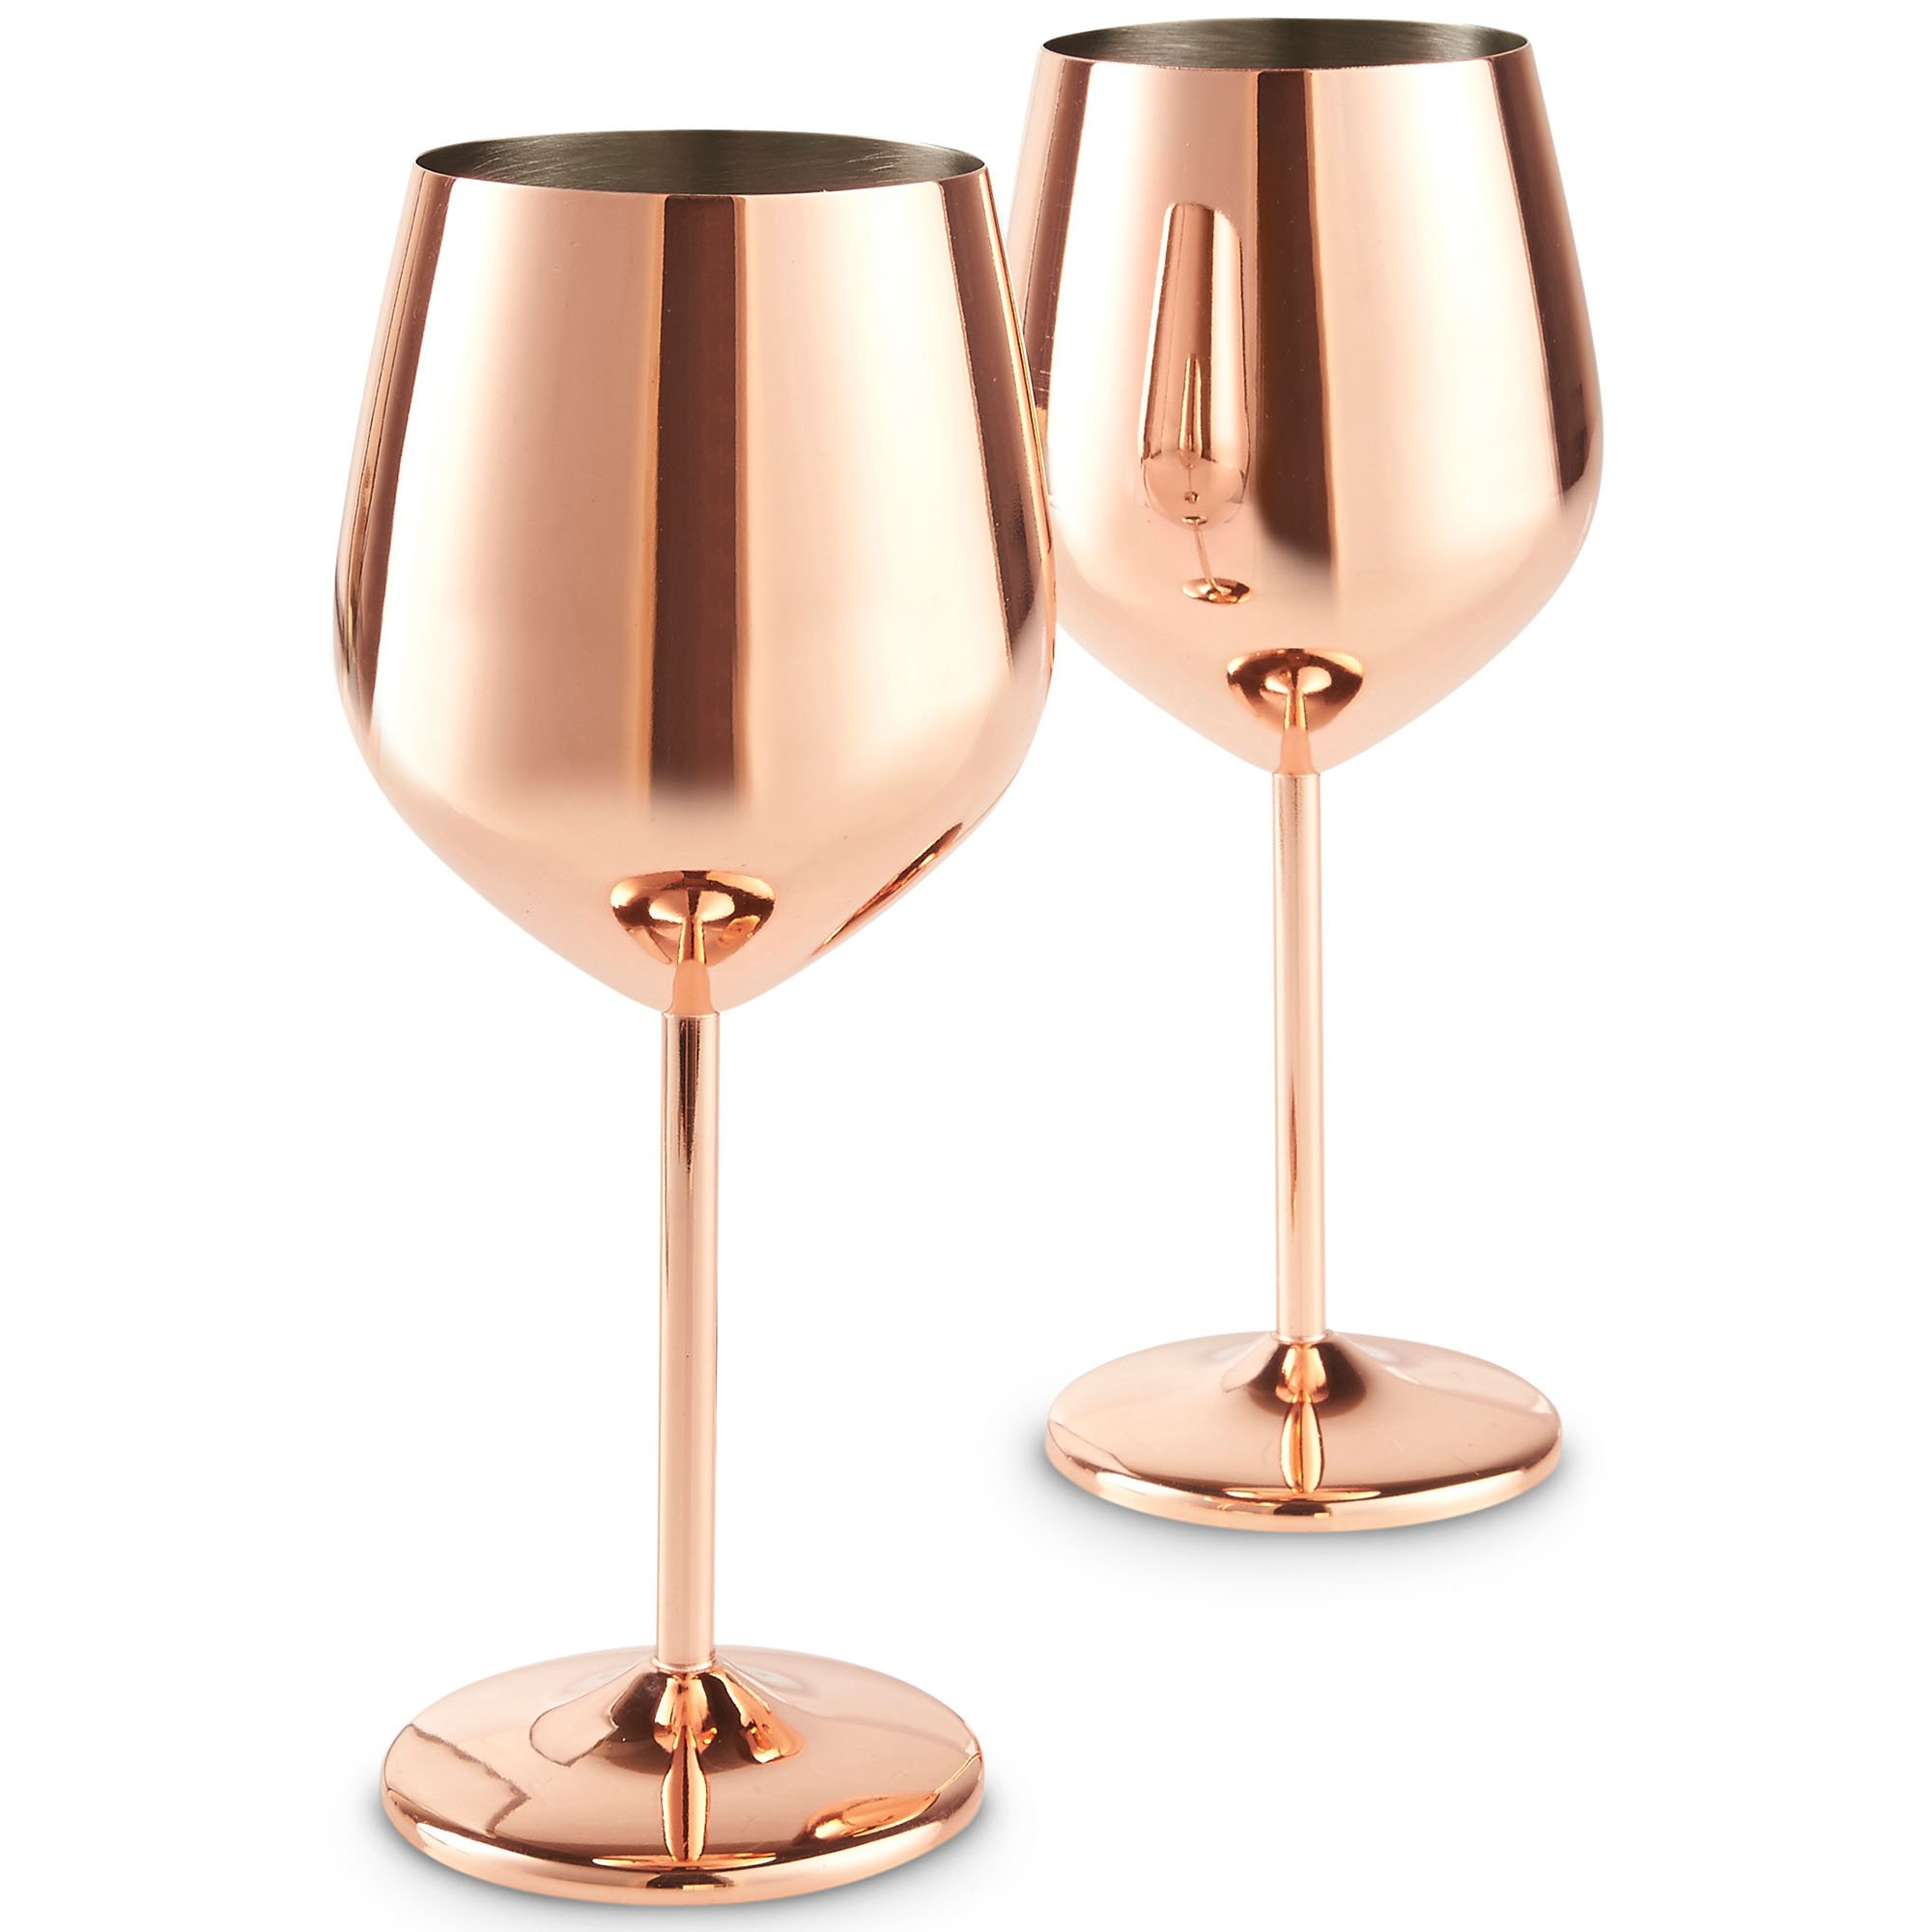 VonShef Copper Wine Glasses, Stainless Steel, Set of 2 16oz Shatter Proof Glasses with Gift Box